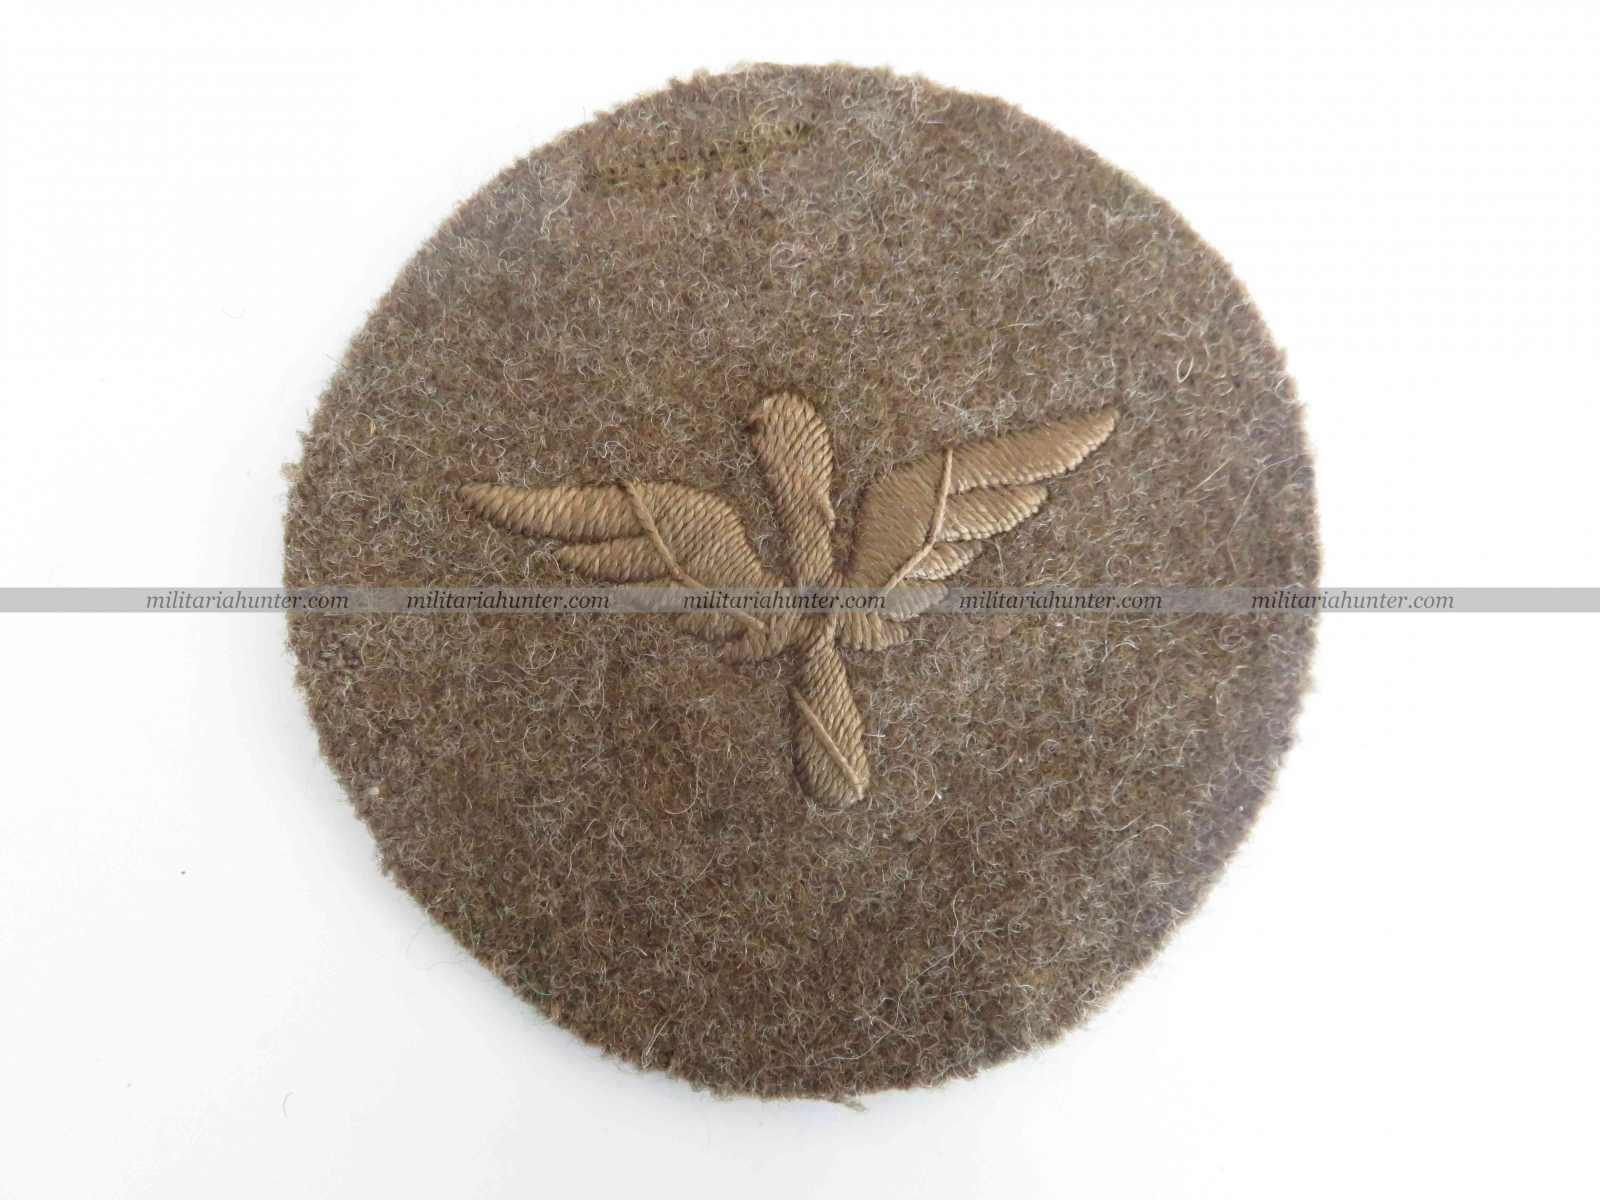 militaria : US WW1 Air Service sleeve patch